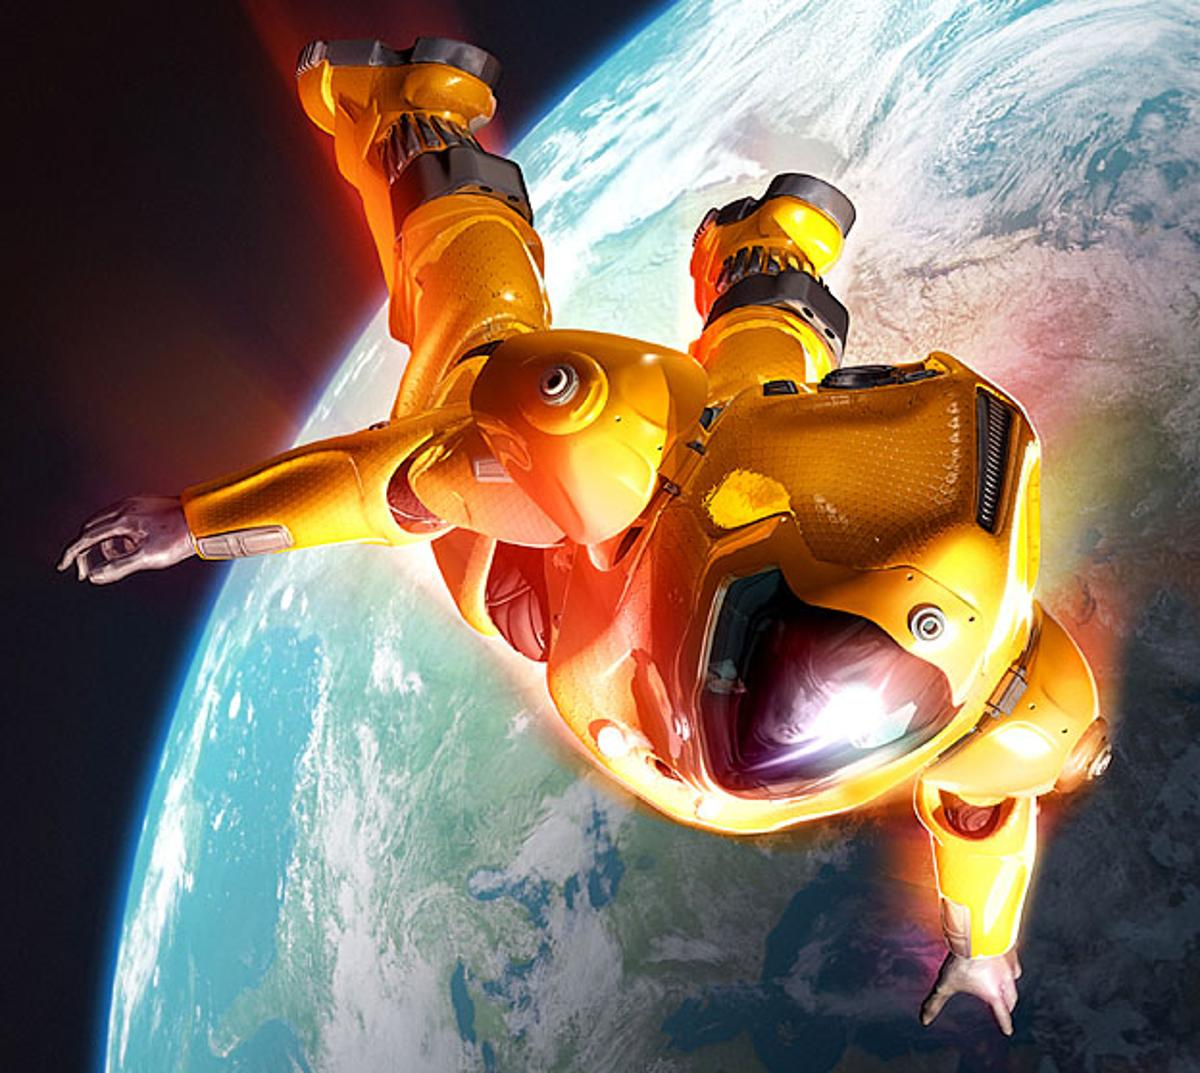 Space diving - extreme sport of the future (Photo: www.mondoart.net)